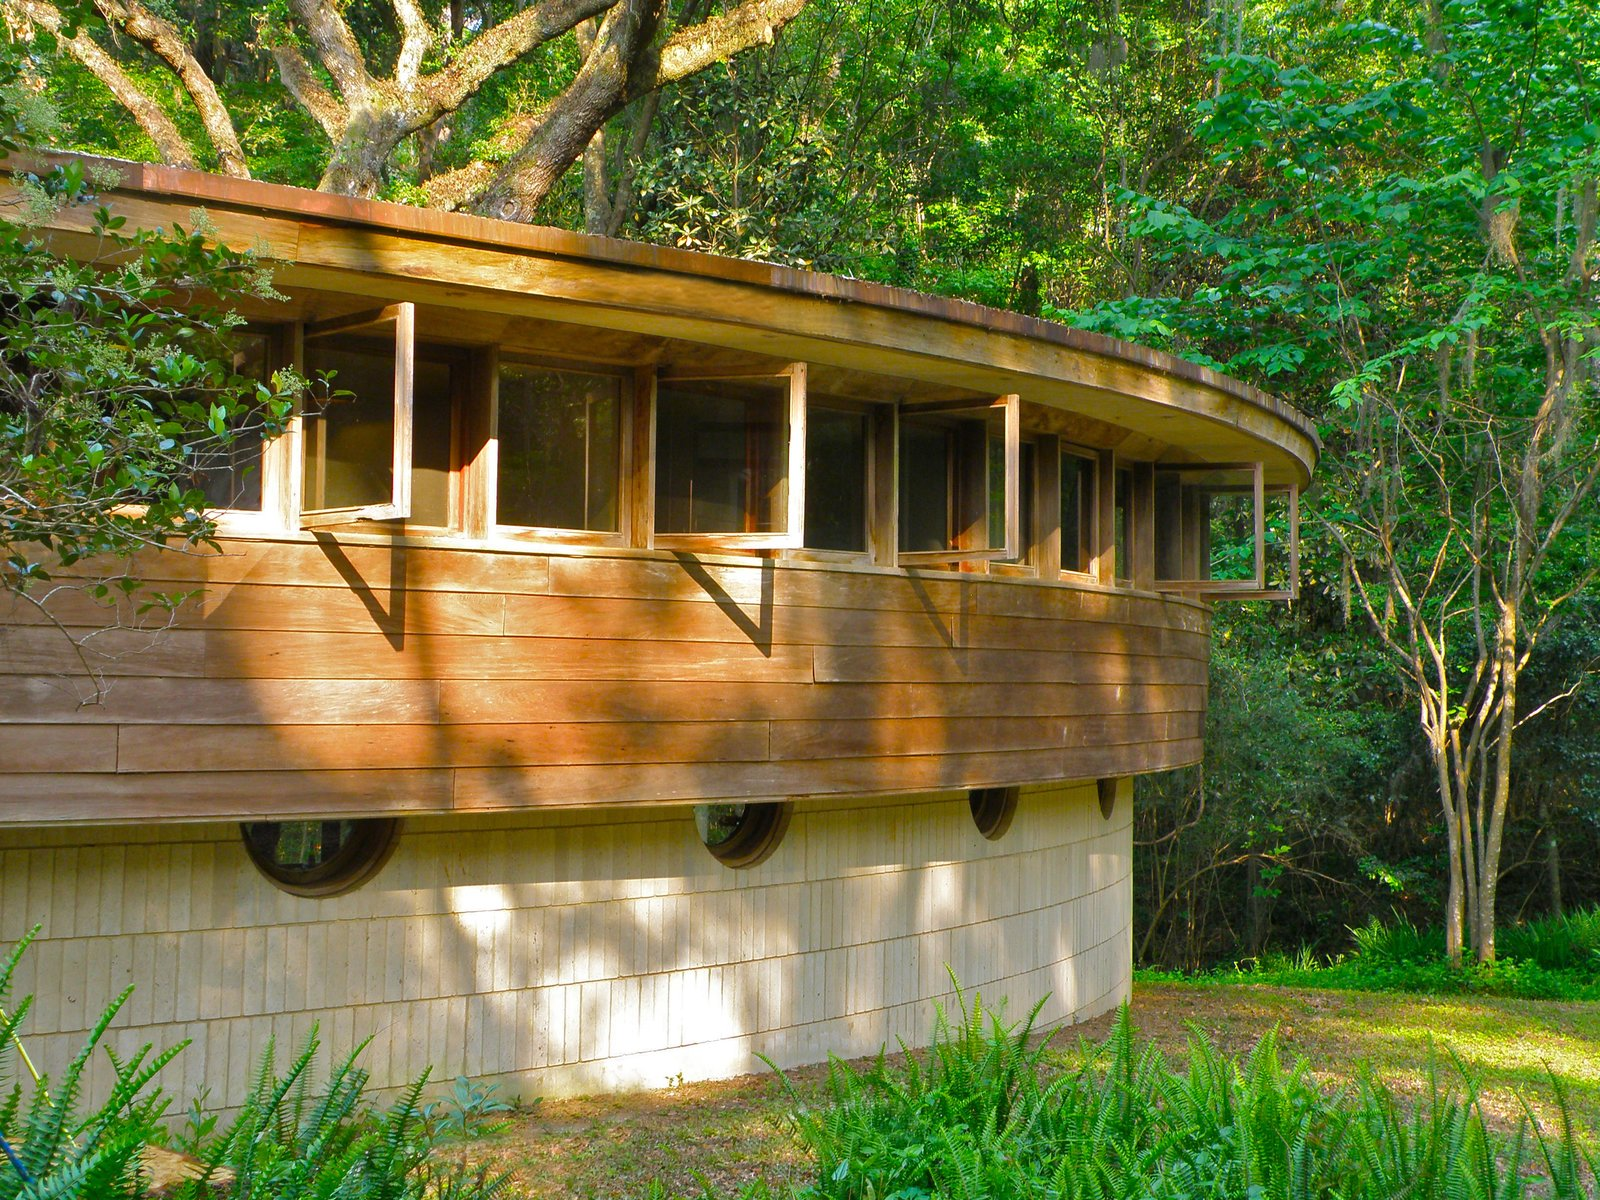 Wright designed a similar style house for his son Llewellyn a year later.  Frank Lloyd Wright's Endangered Spring House  by Allie Weiss